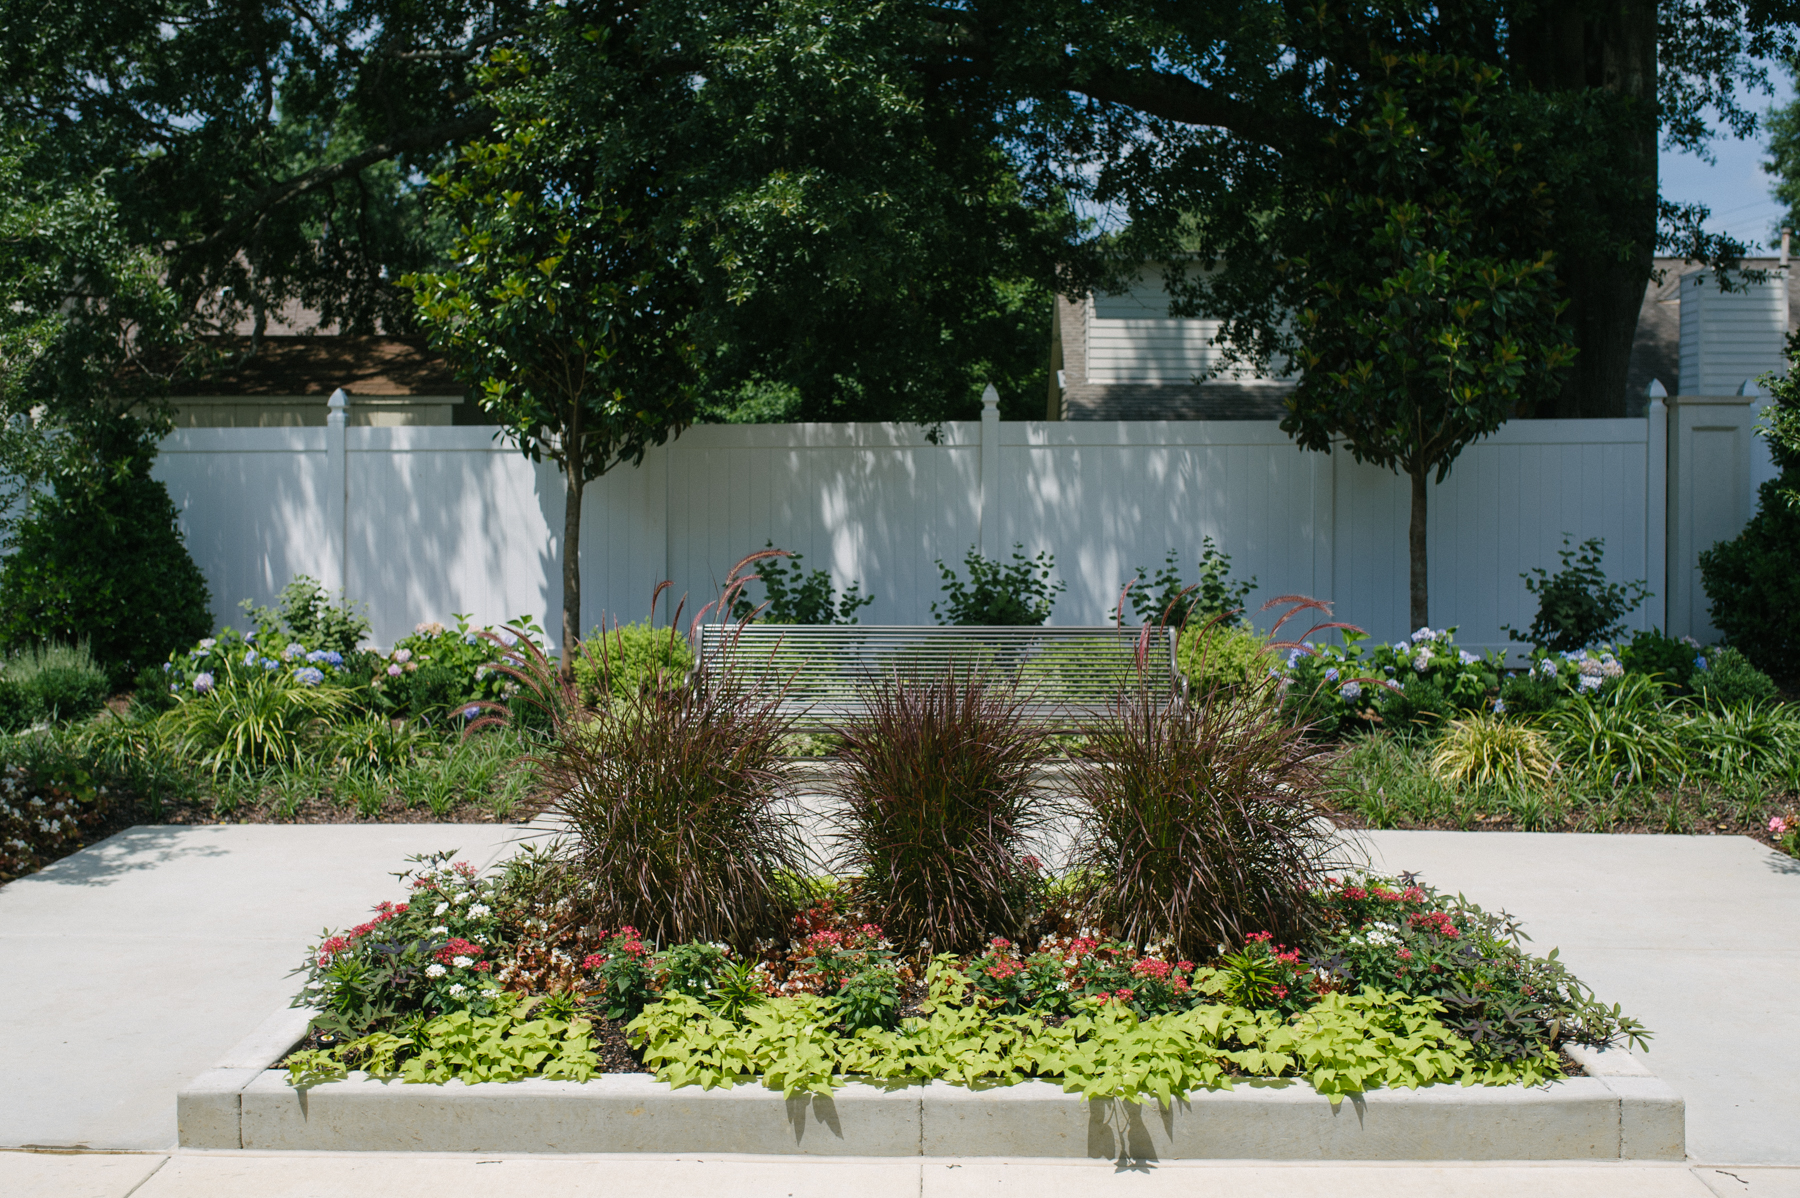 Therapeutic garden at medical facility